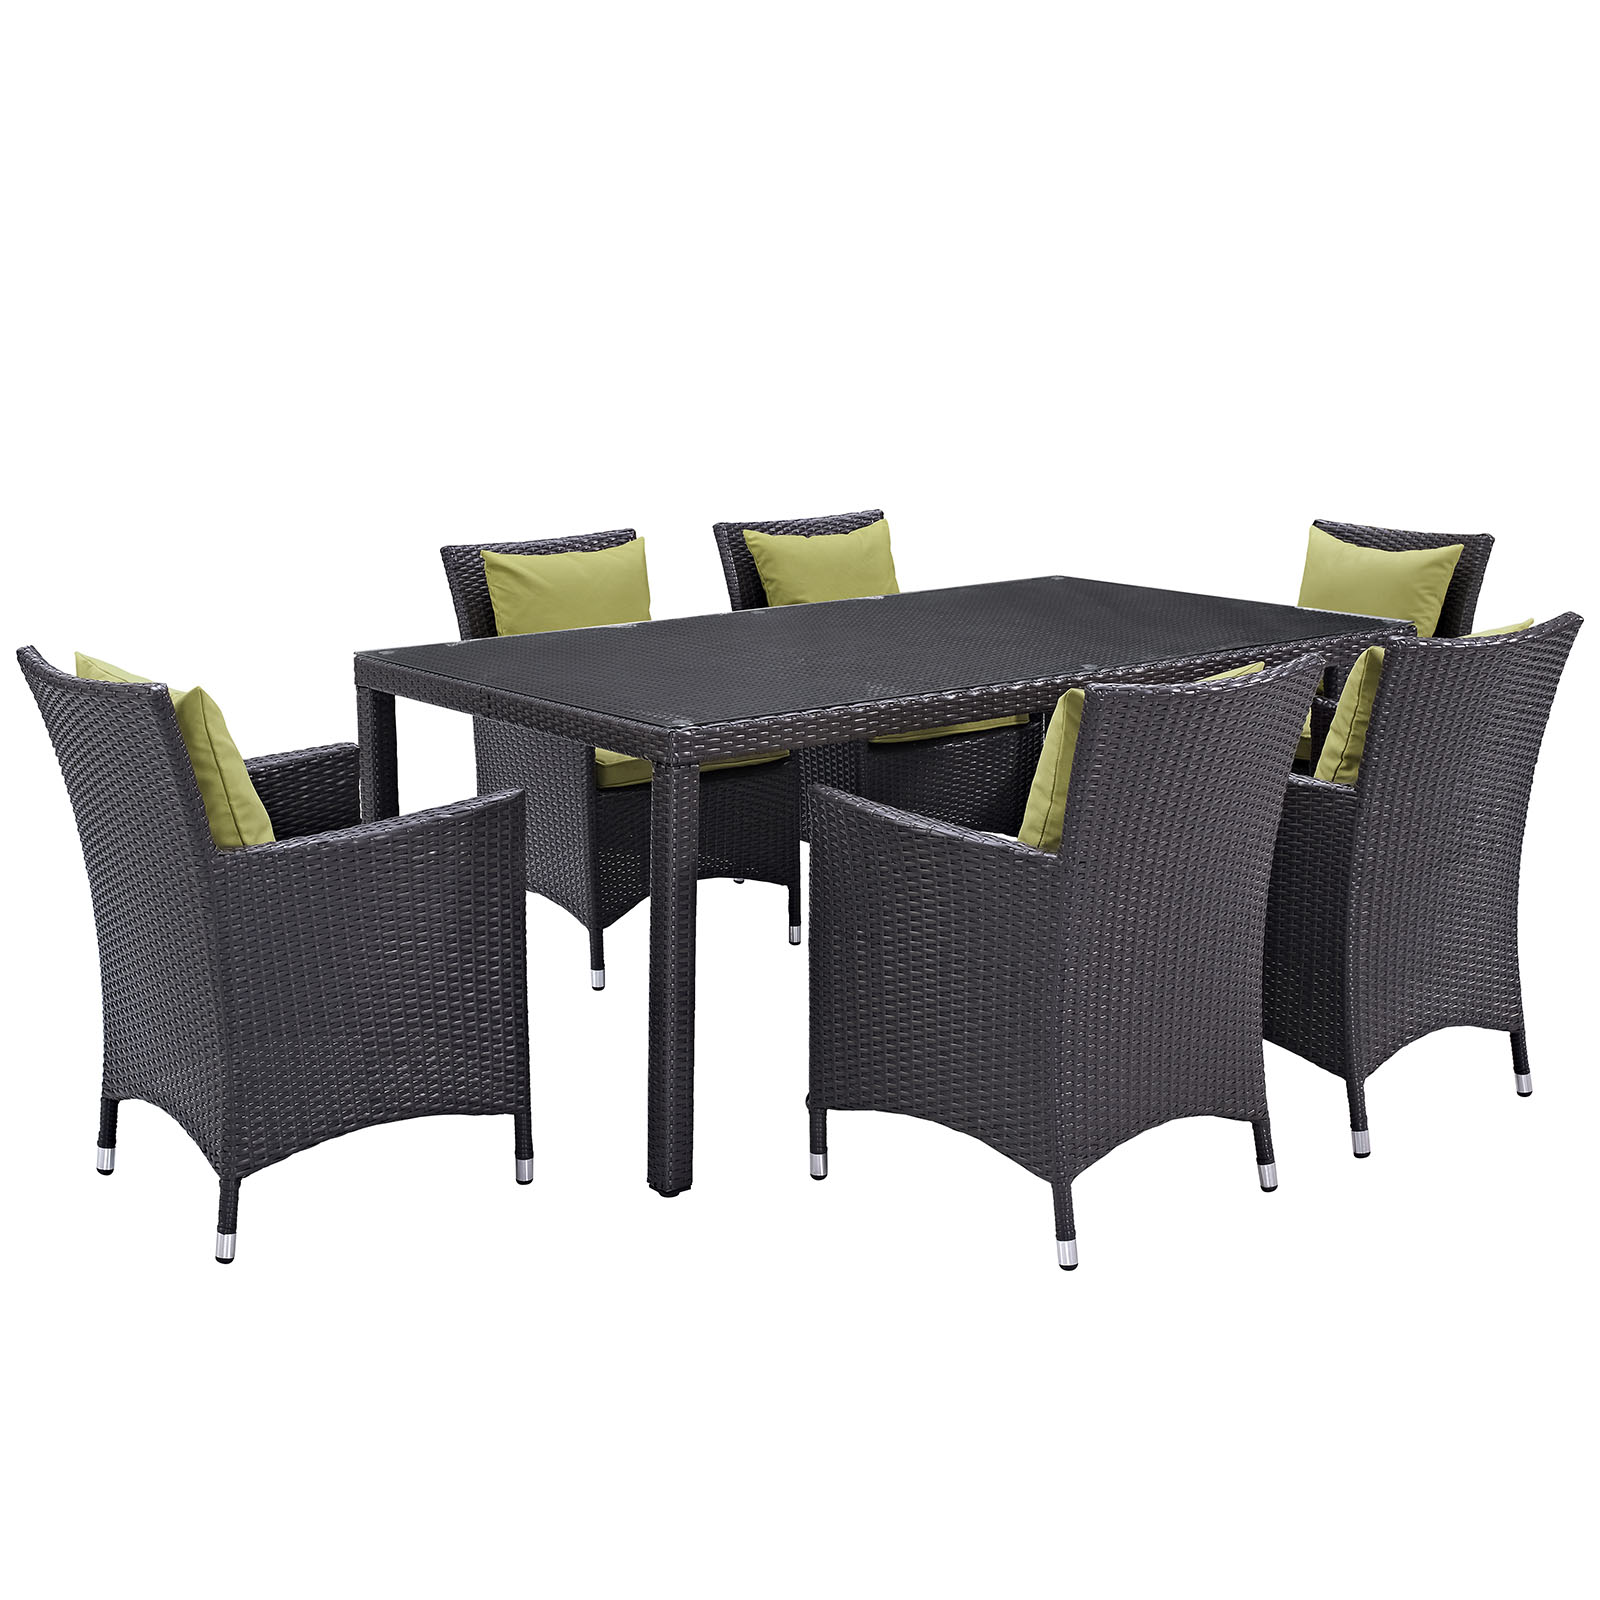 Modern Contemporary Urban Design Outdoor Patio Balcony Seven PCS Dining Chairs and Table Set, Green, Rattan